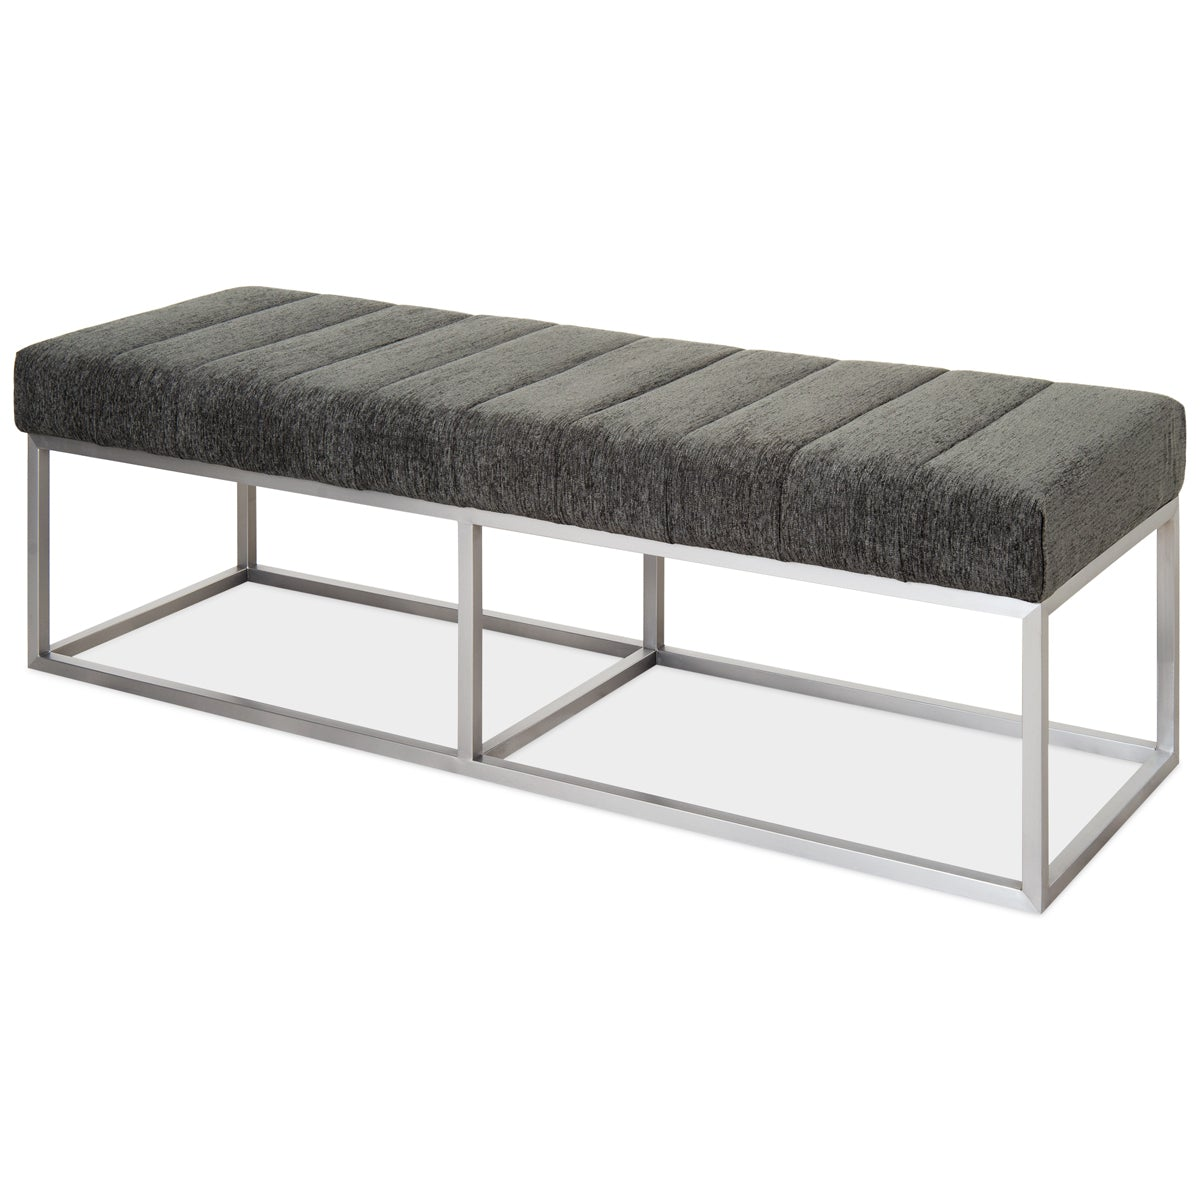 Corfu Bench in Brushed Nickel - ModShop1.com